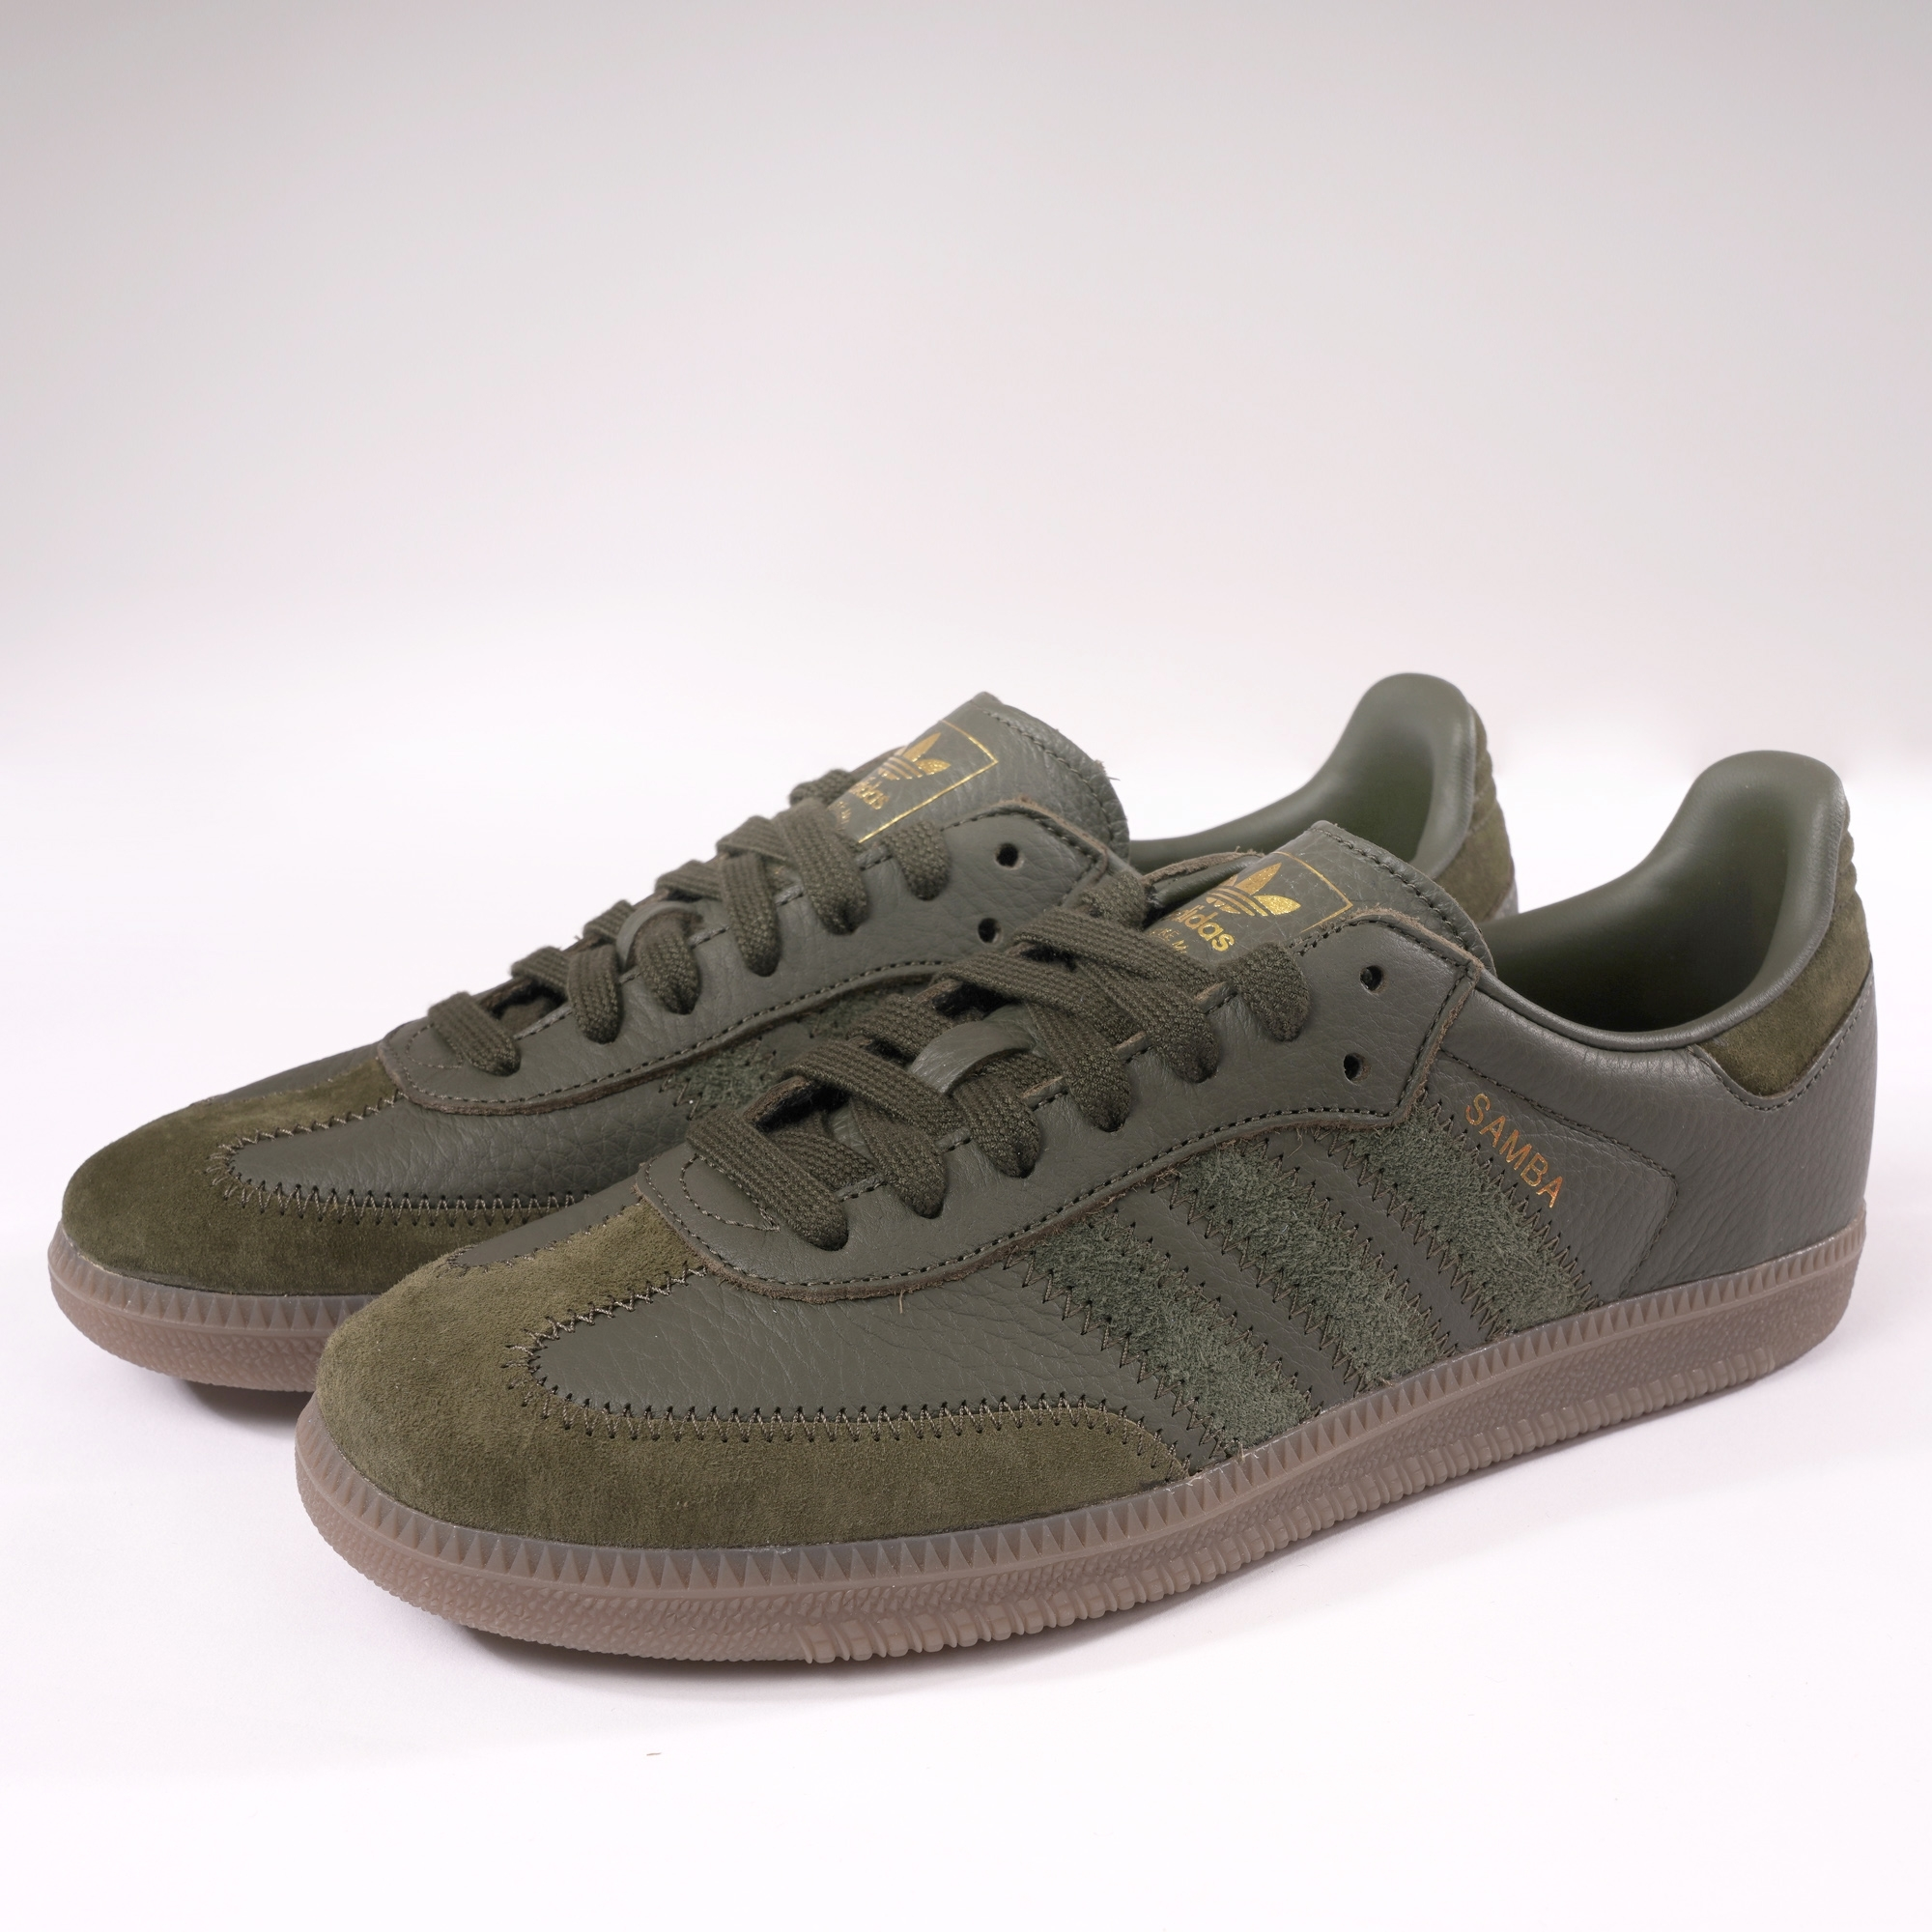 low priced c95b3 1c0d6 Adidas Samba OG FT green